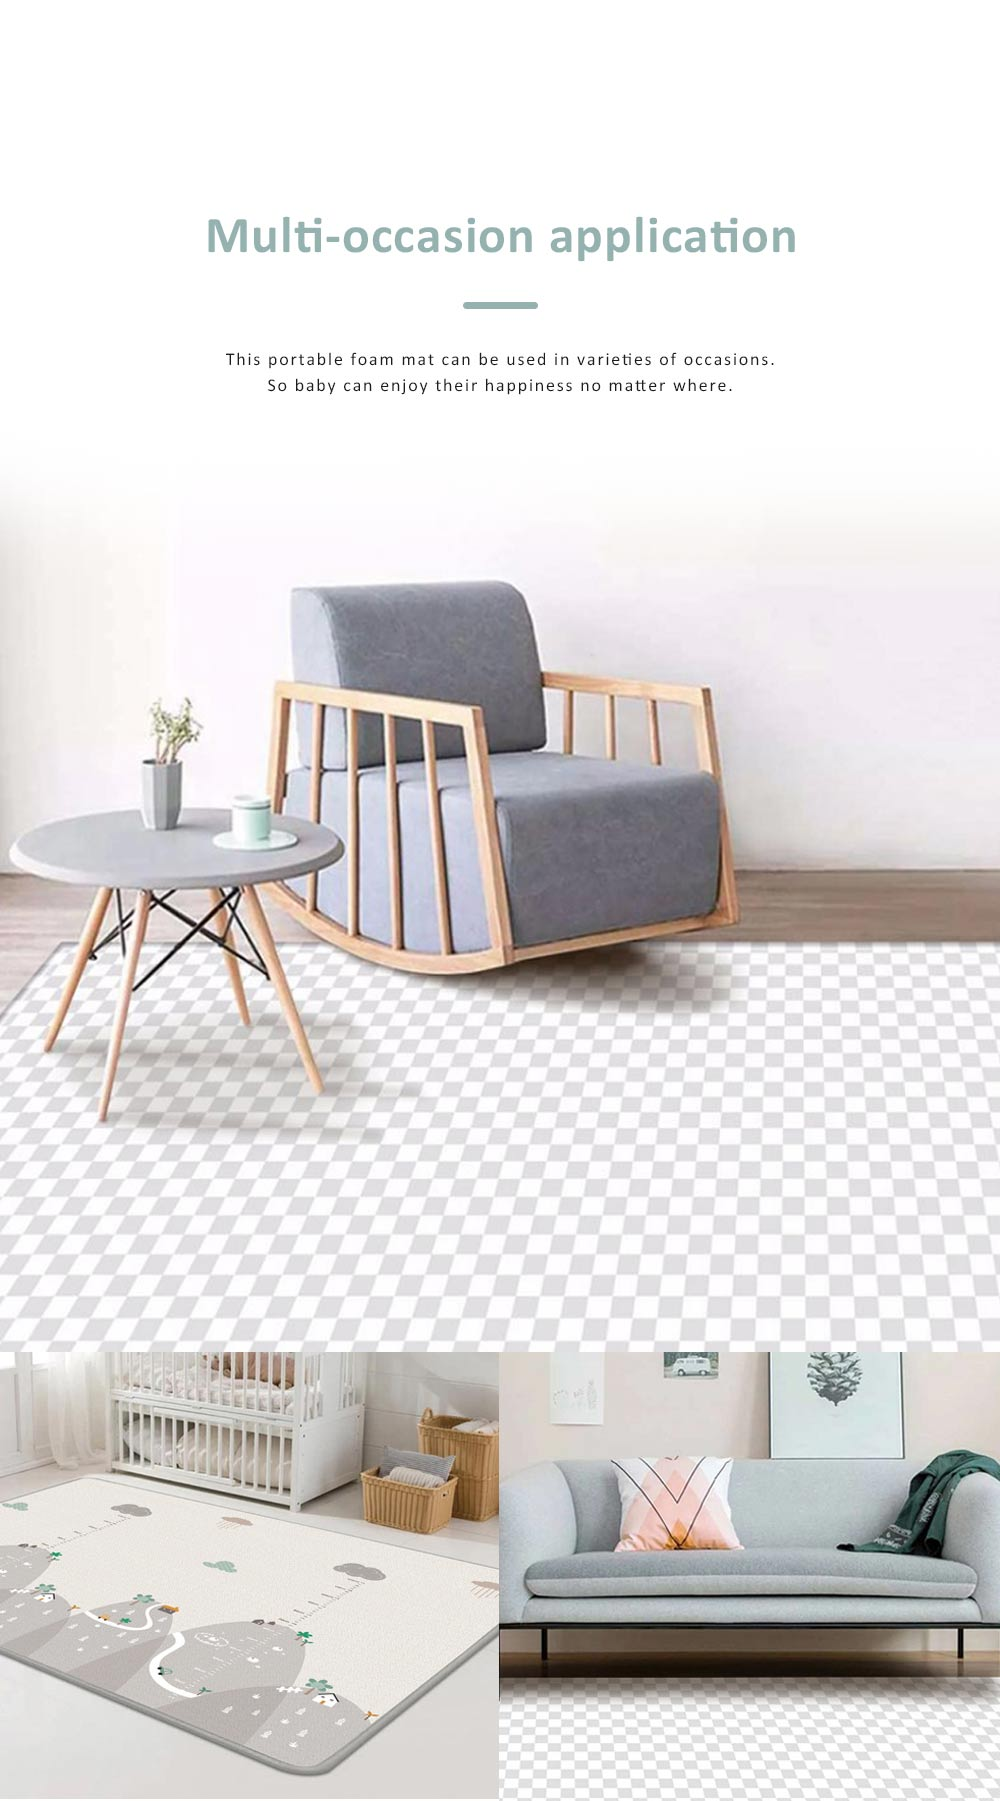 Double Sided Pyramid Textured Playing Mat for Baby, Nontoxic Odorless LDPE Material Crawling Carpet for Home Use 7